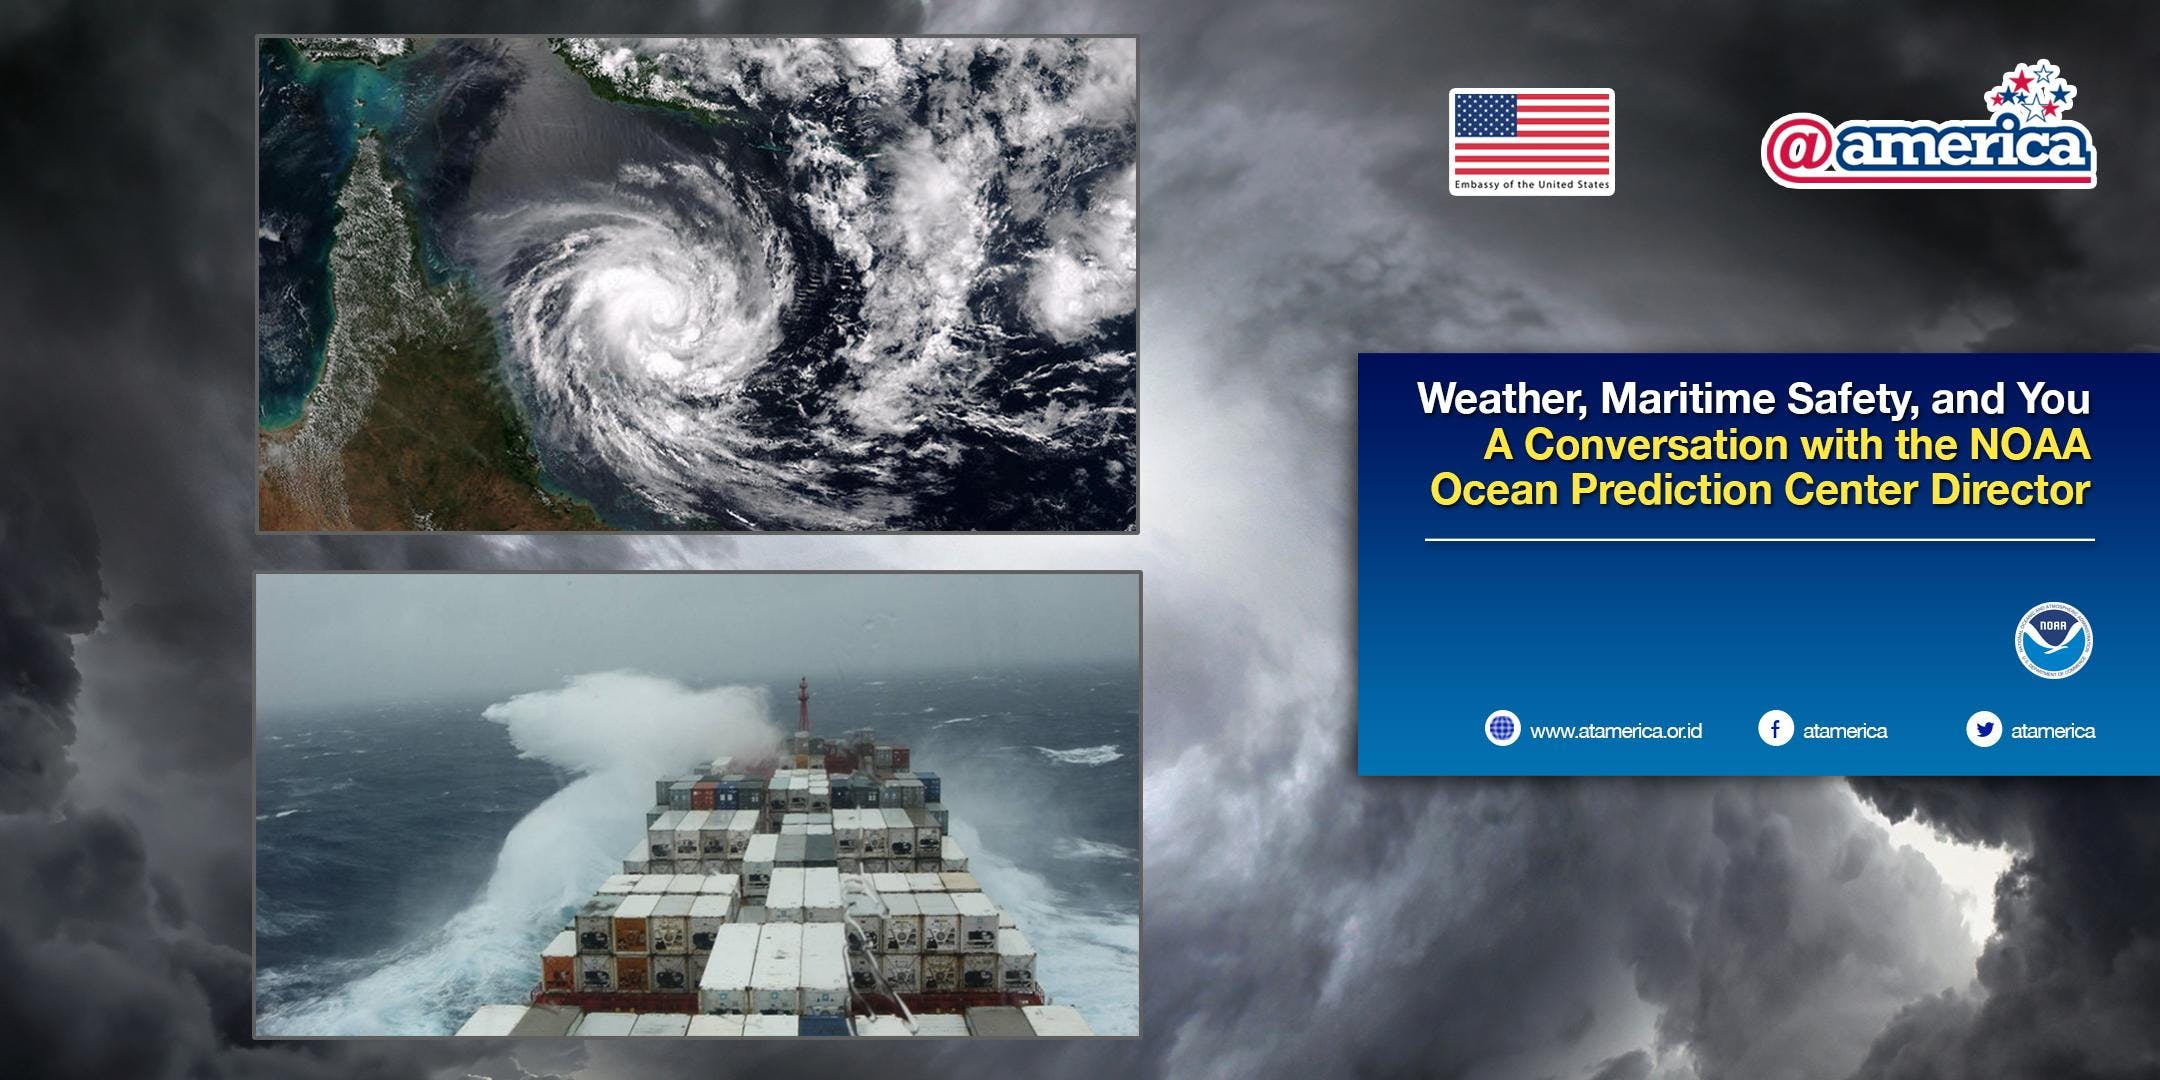 Weather Maritime Safety and You  A Conversation with the NOAA Ocean Prediction Center Director